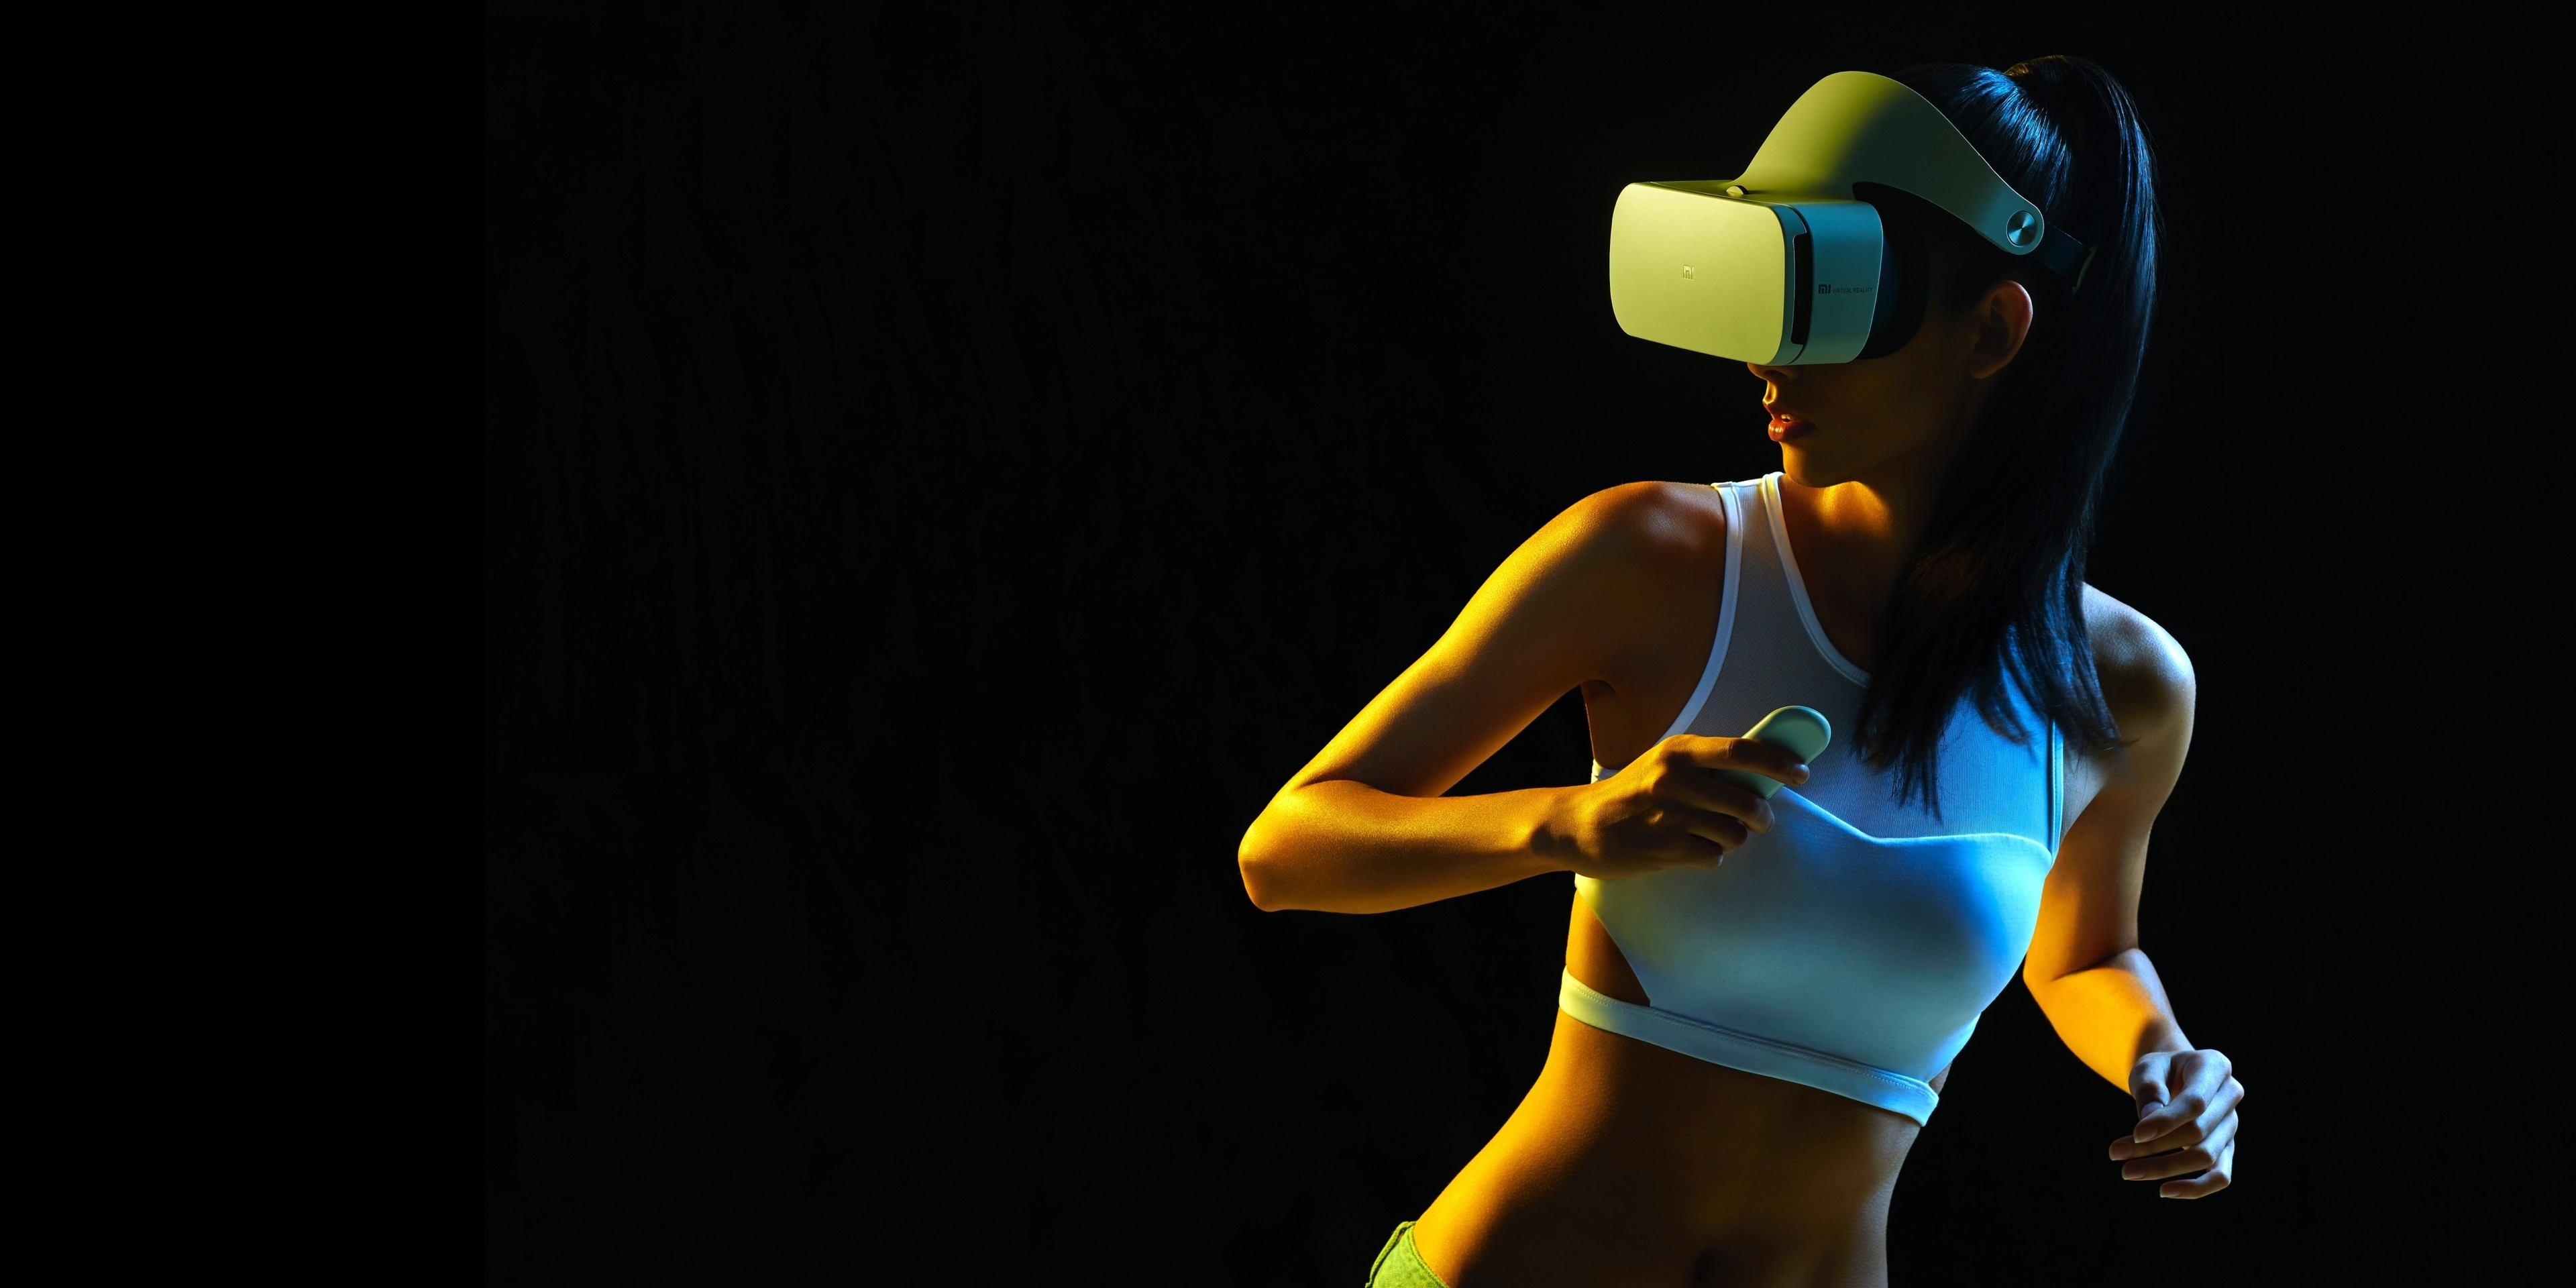 Wallpaper Mi Vr Xiaomi Vr Virtual Reality Vr Headset HD Wallpapers Download Free Images Wallpaper [1000image.com]